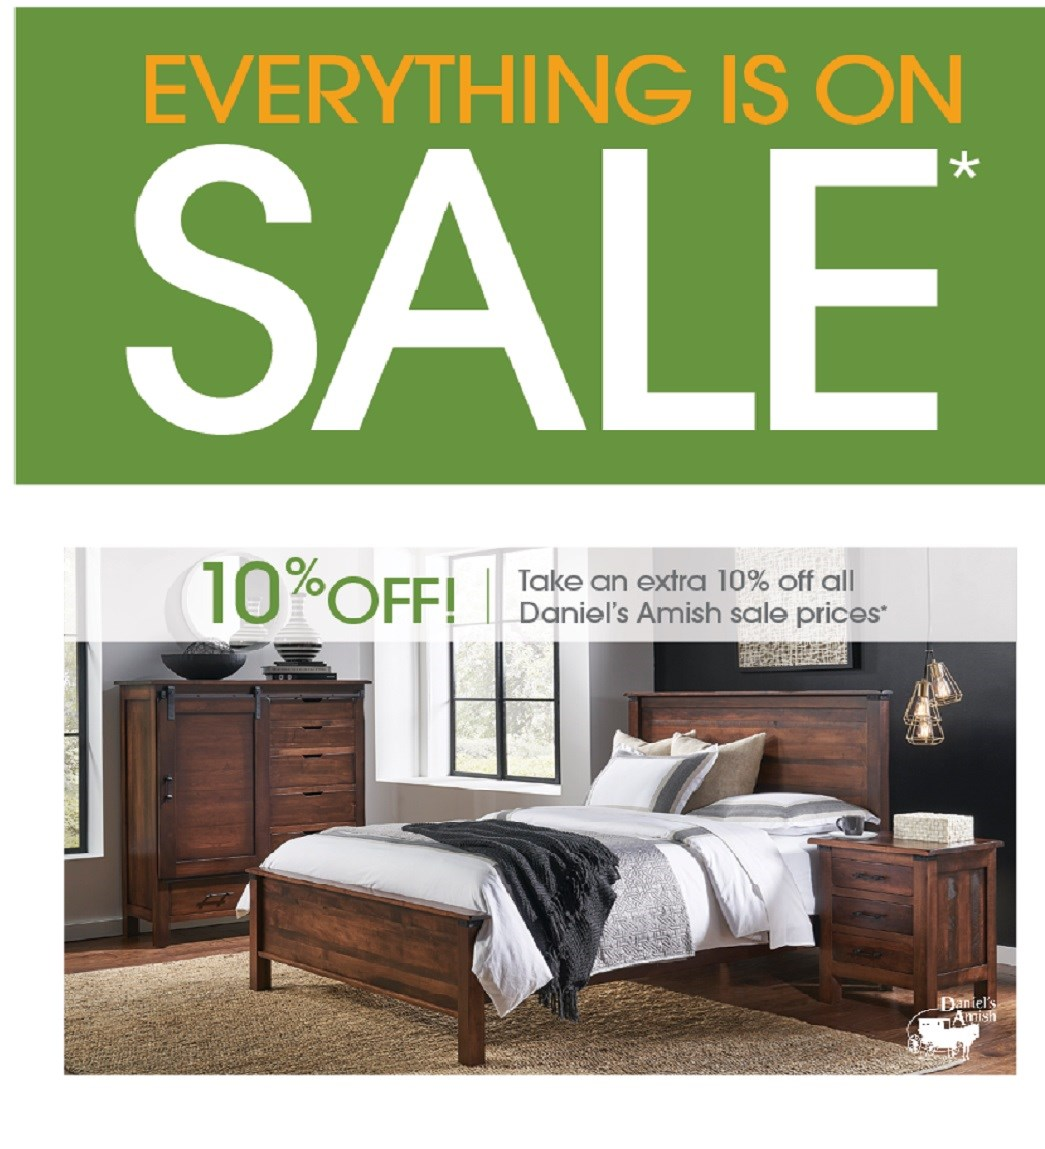 Save Some Green With Daniel's Amish 10% Off